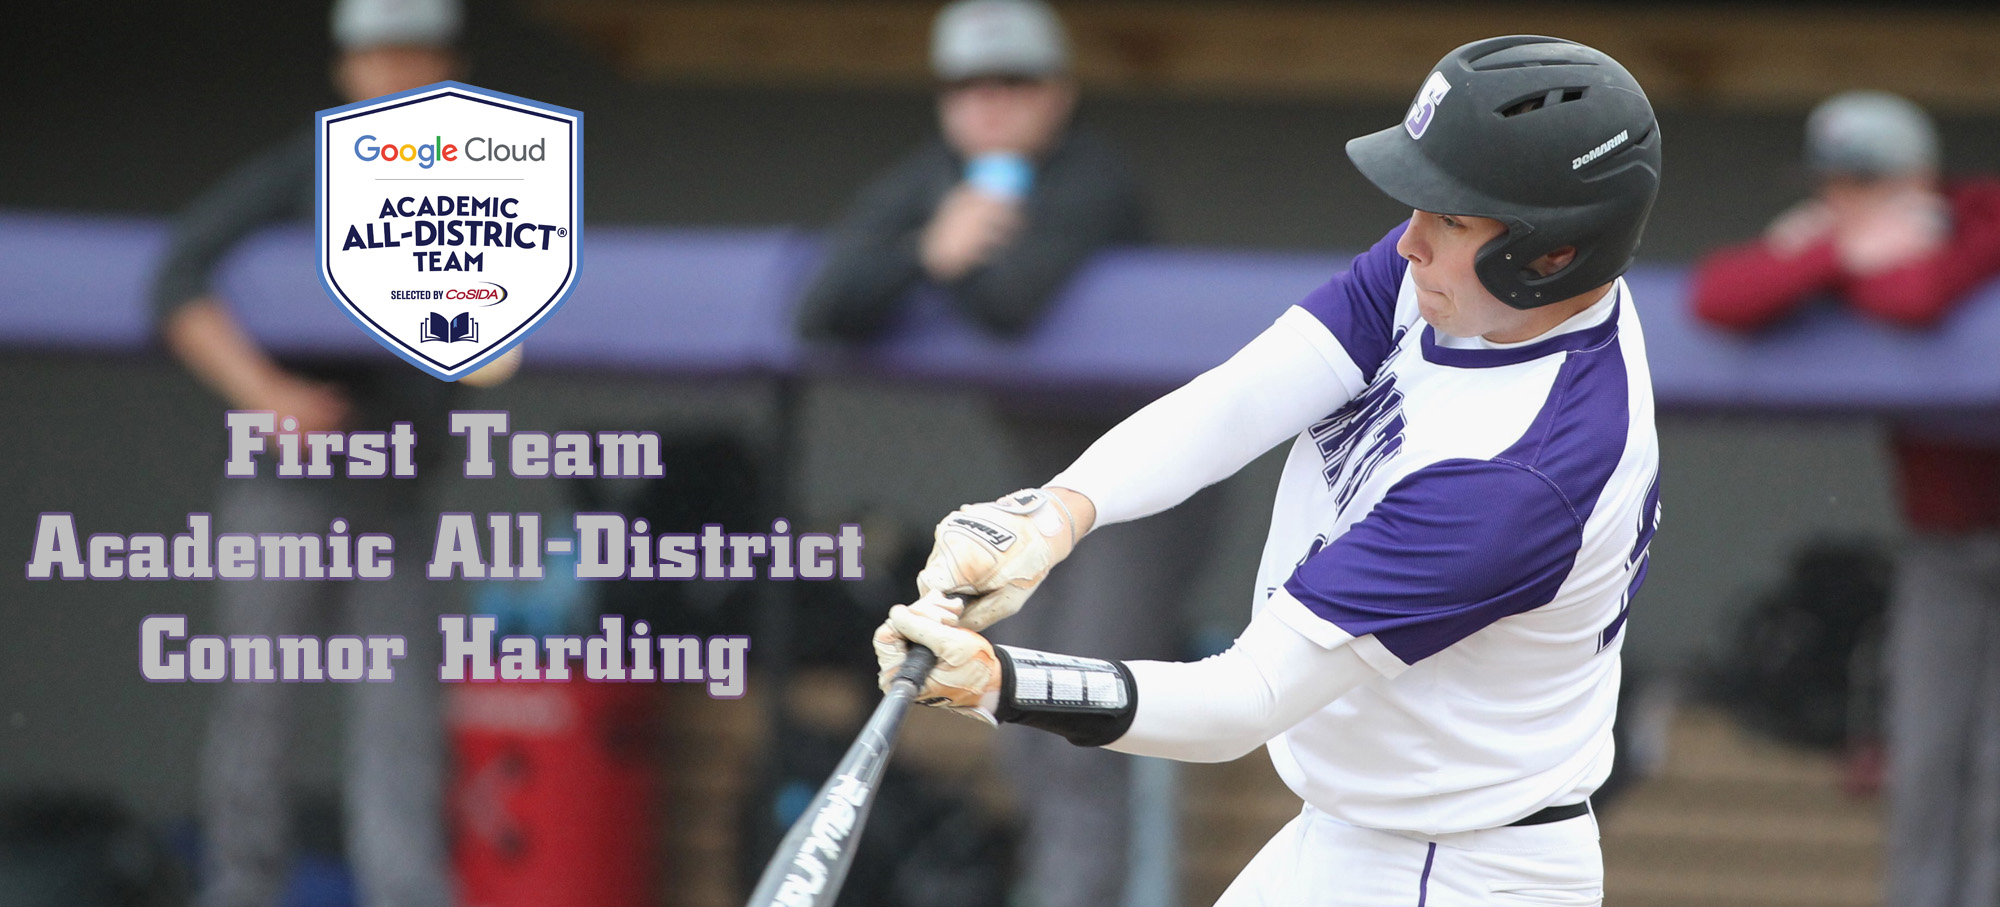 Sophomore outfielder Connor Harding has been named to the CoSIDA Academic All-District Team. © Photo by Timothy R. Dougherty / doubleeaglephotography.com